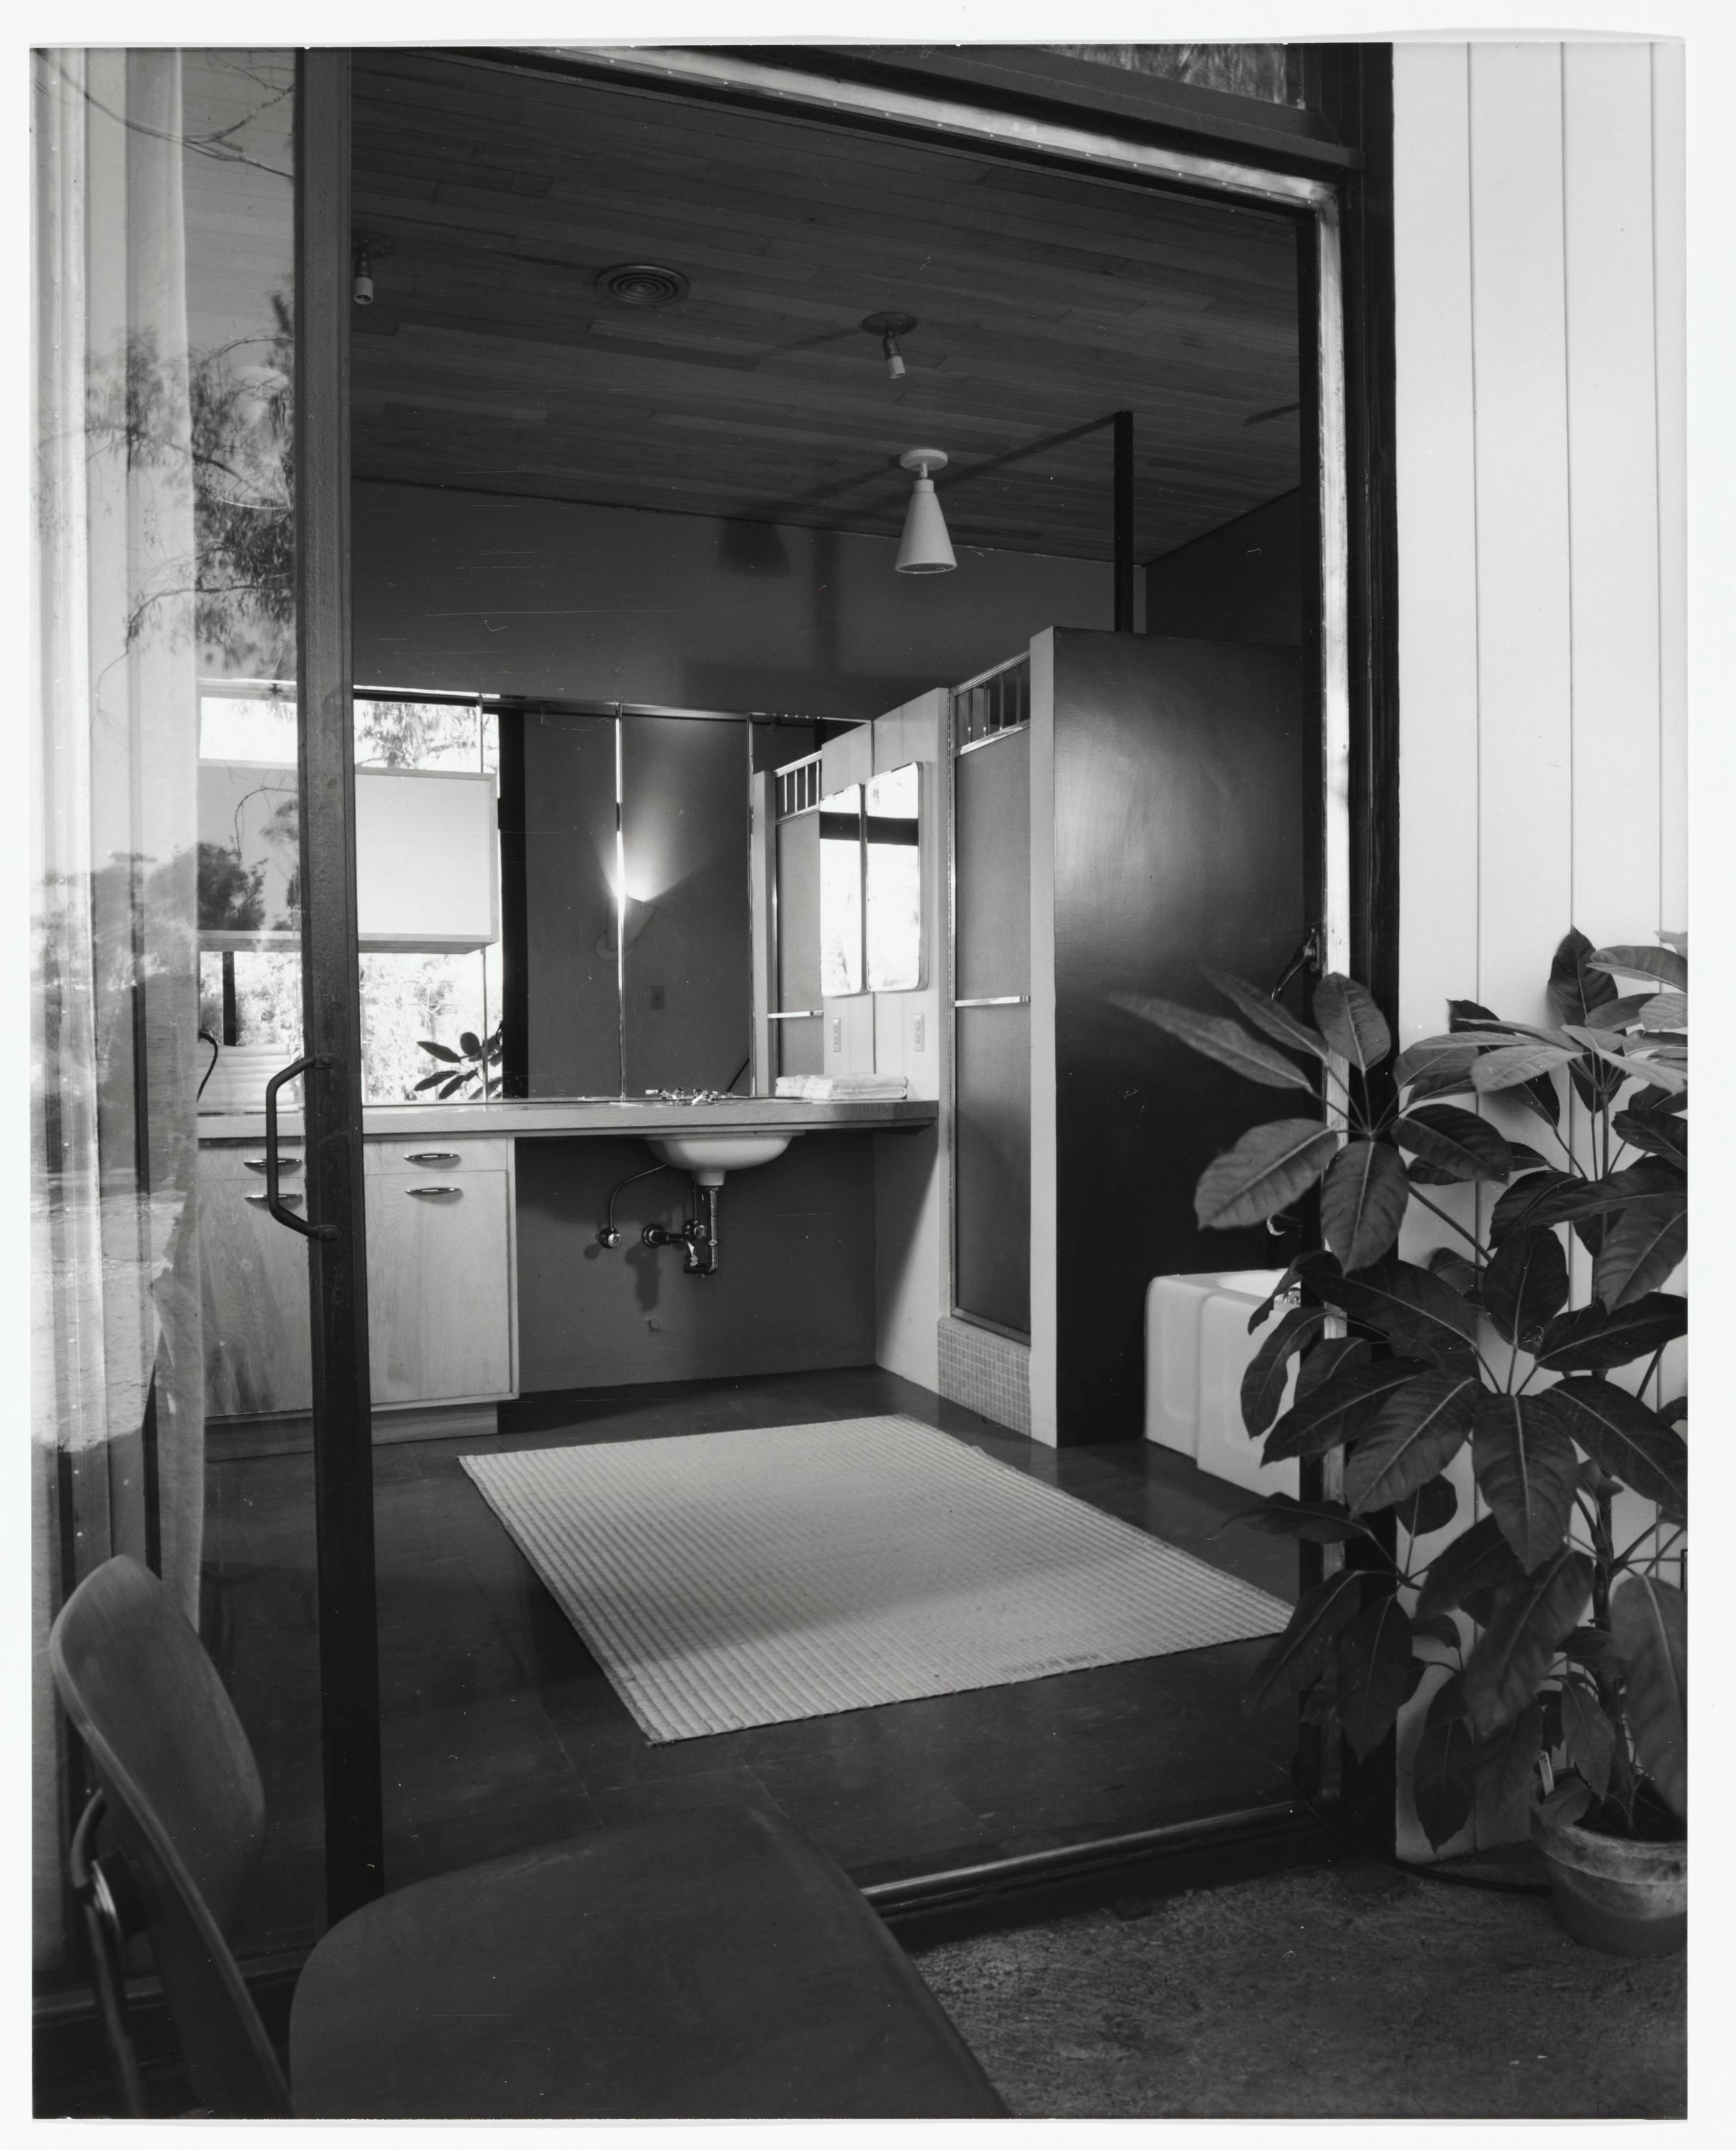 918e2f3eac Bathroom of Case Study House No. 9. Architects Charles Eames and Eero  Saarinen Photography by Julius Shulman